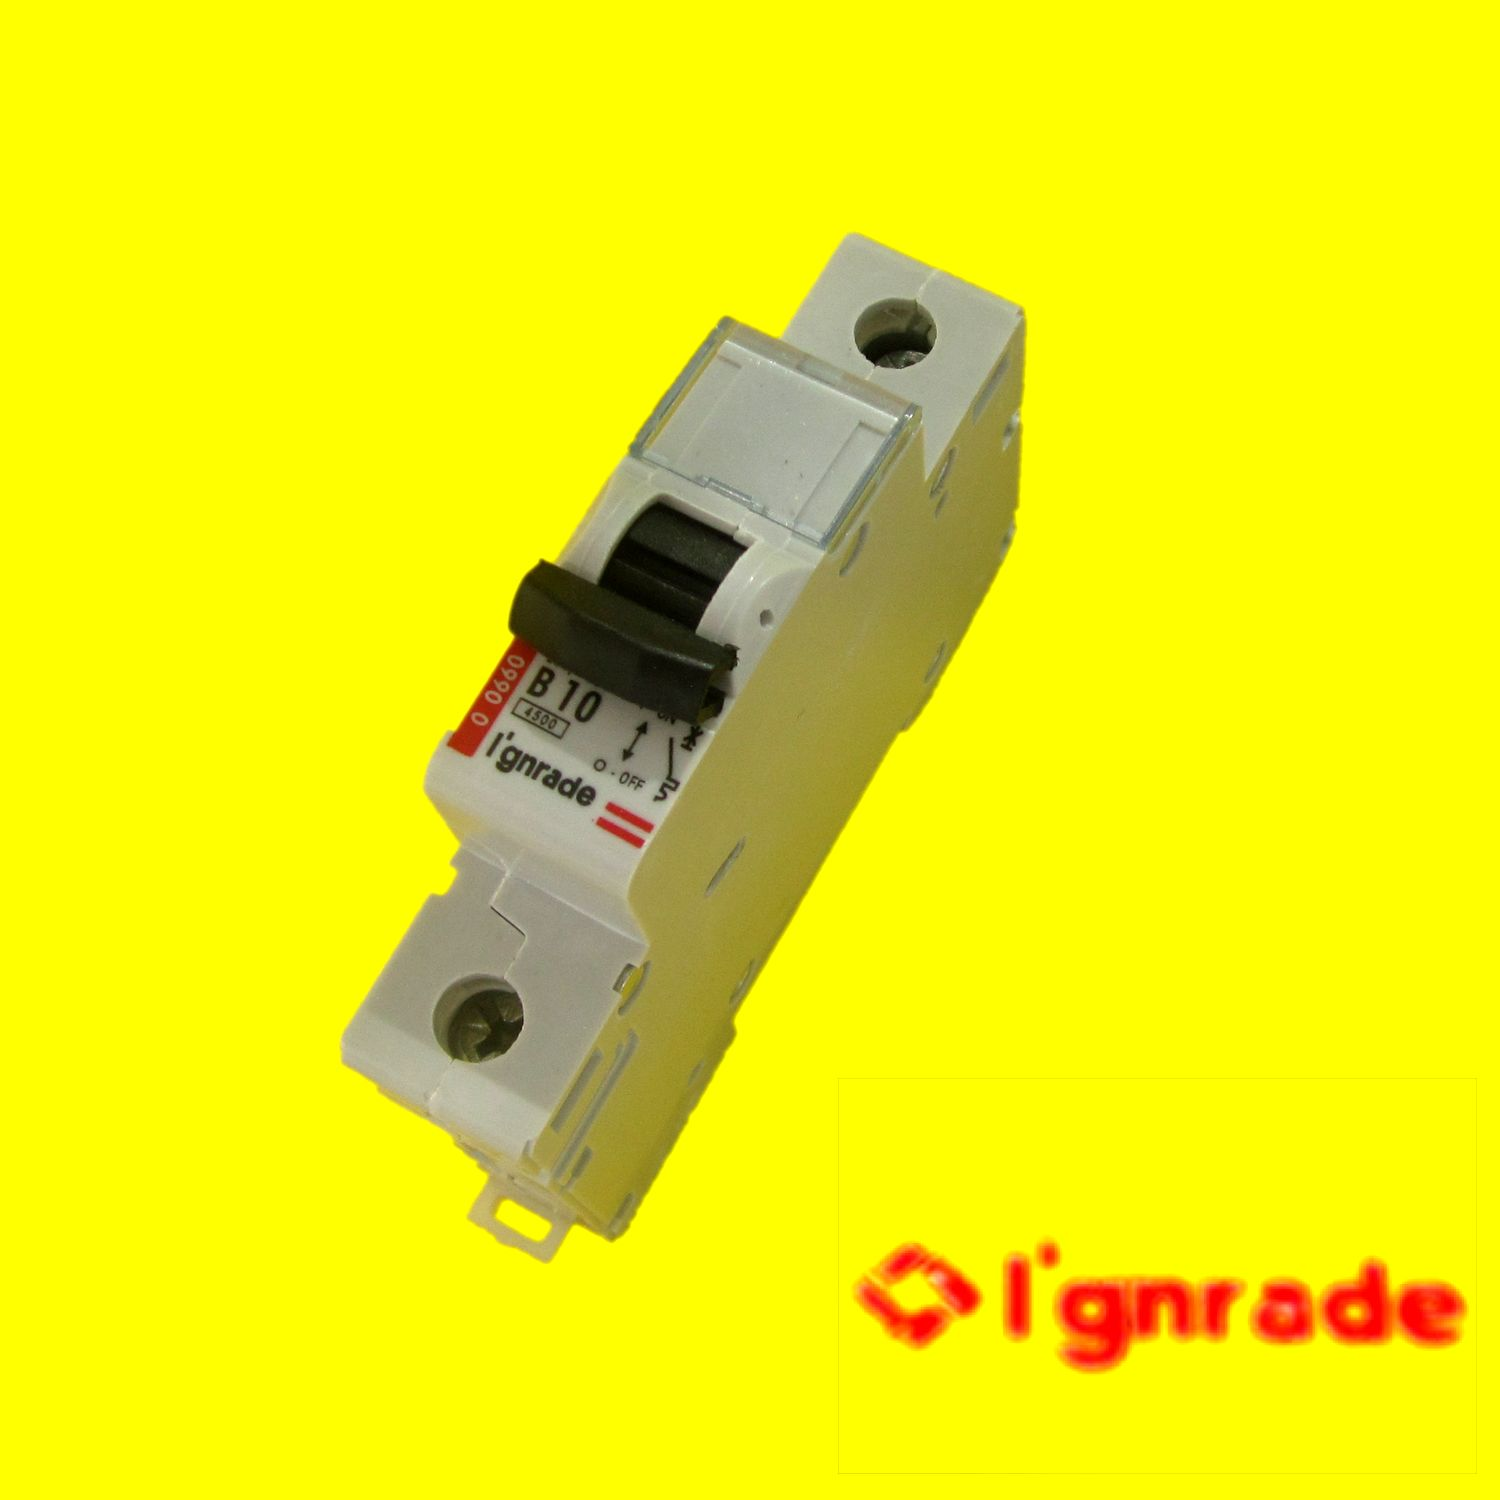 legrand mini circuit breaker ,miniature circuit breaker ,mcb ,interrupt,Interruttore